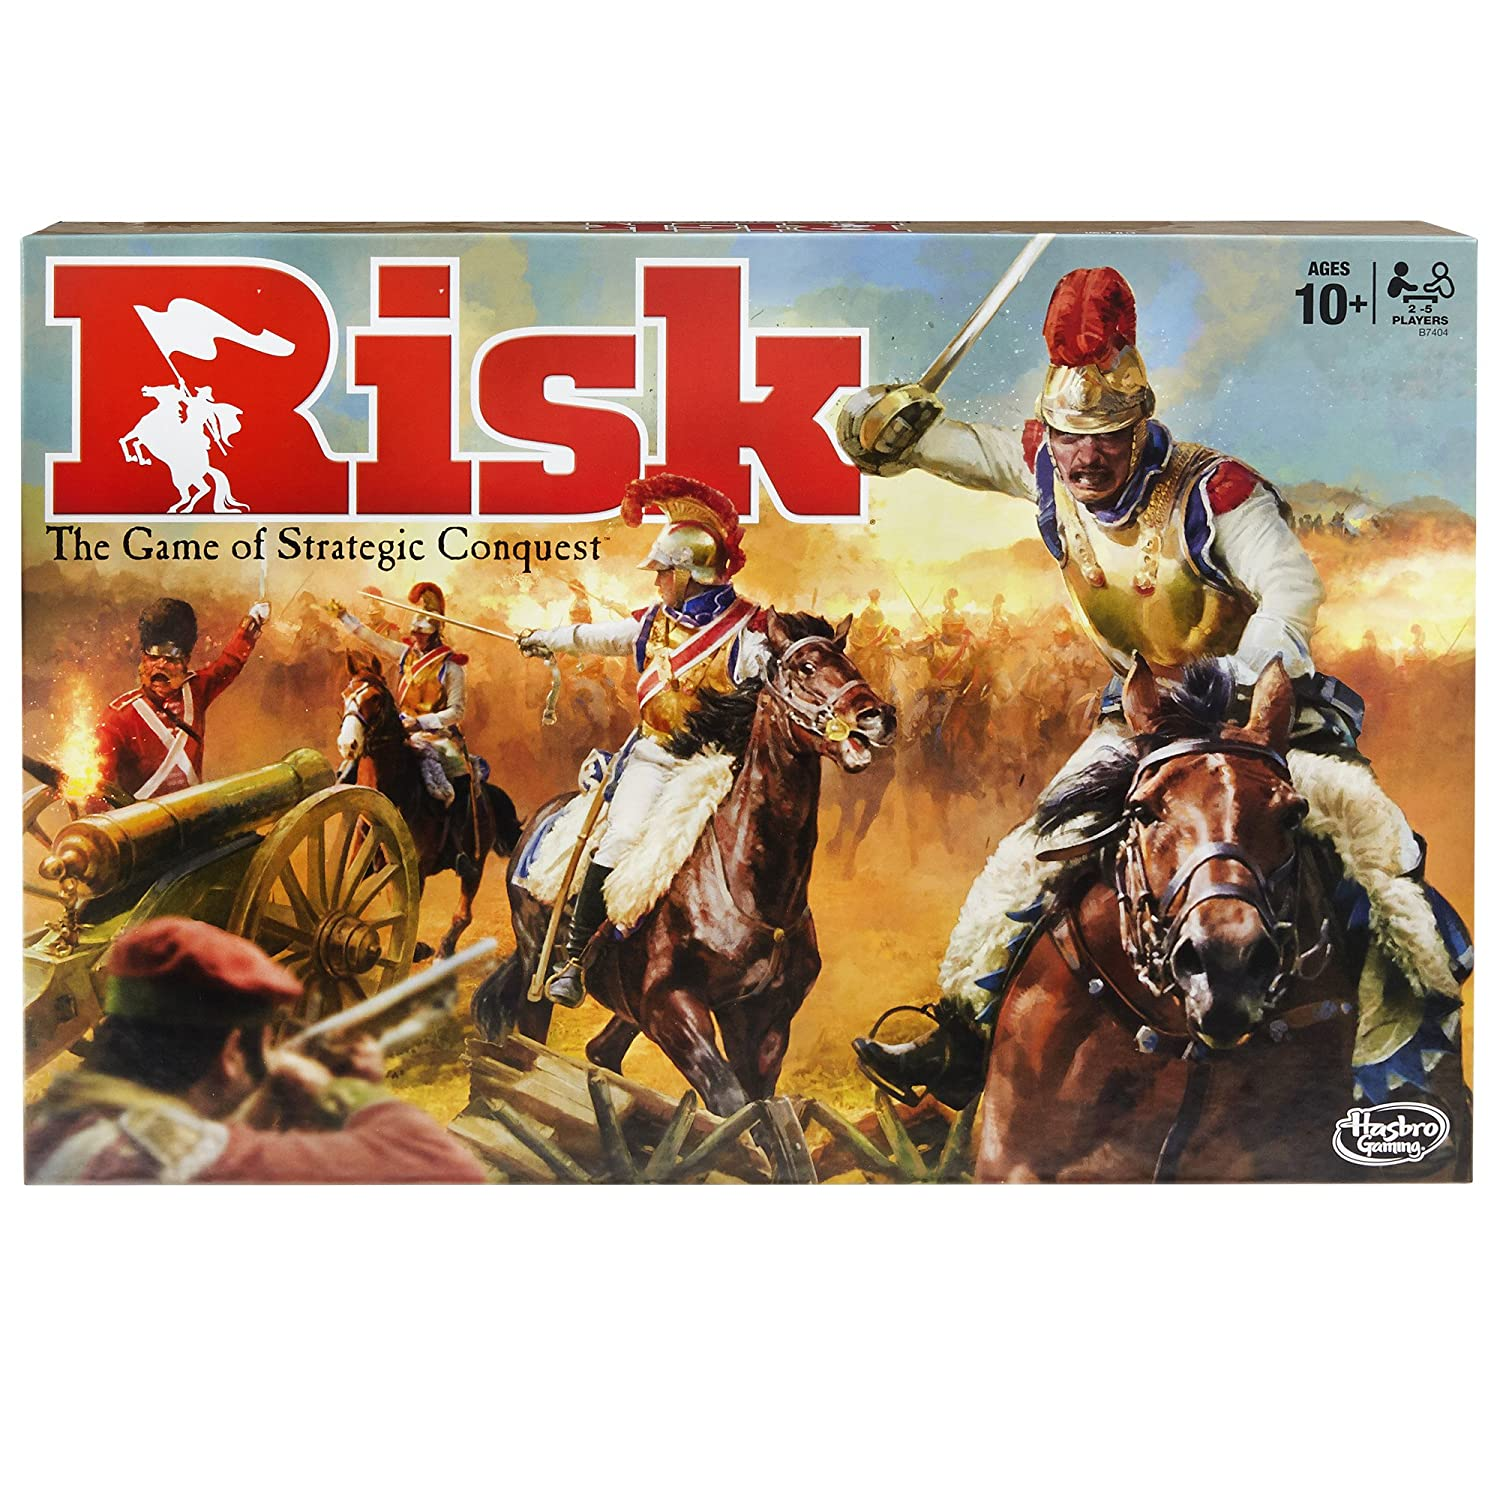 Image of the Risk Board game in a box.